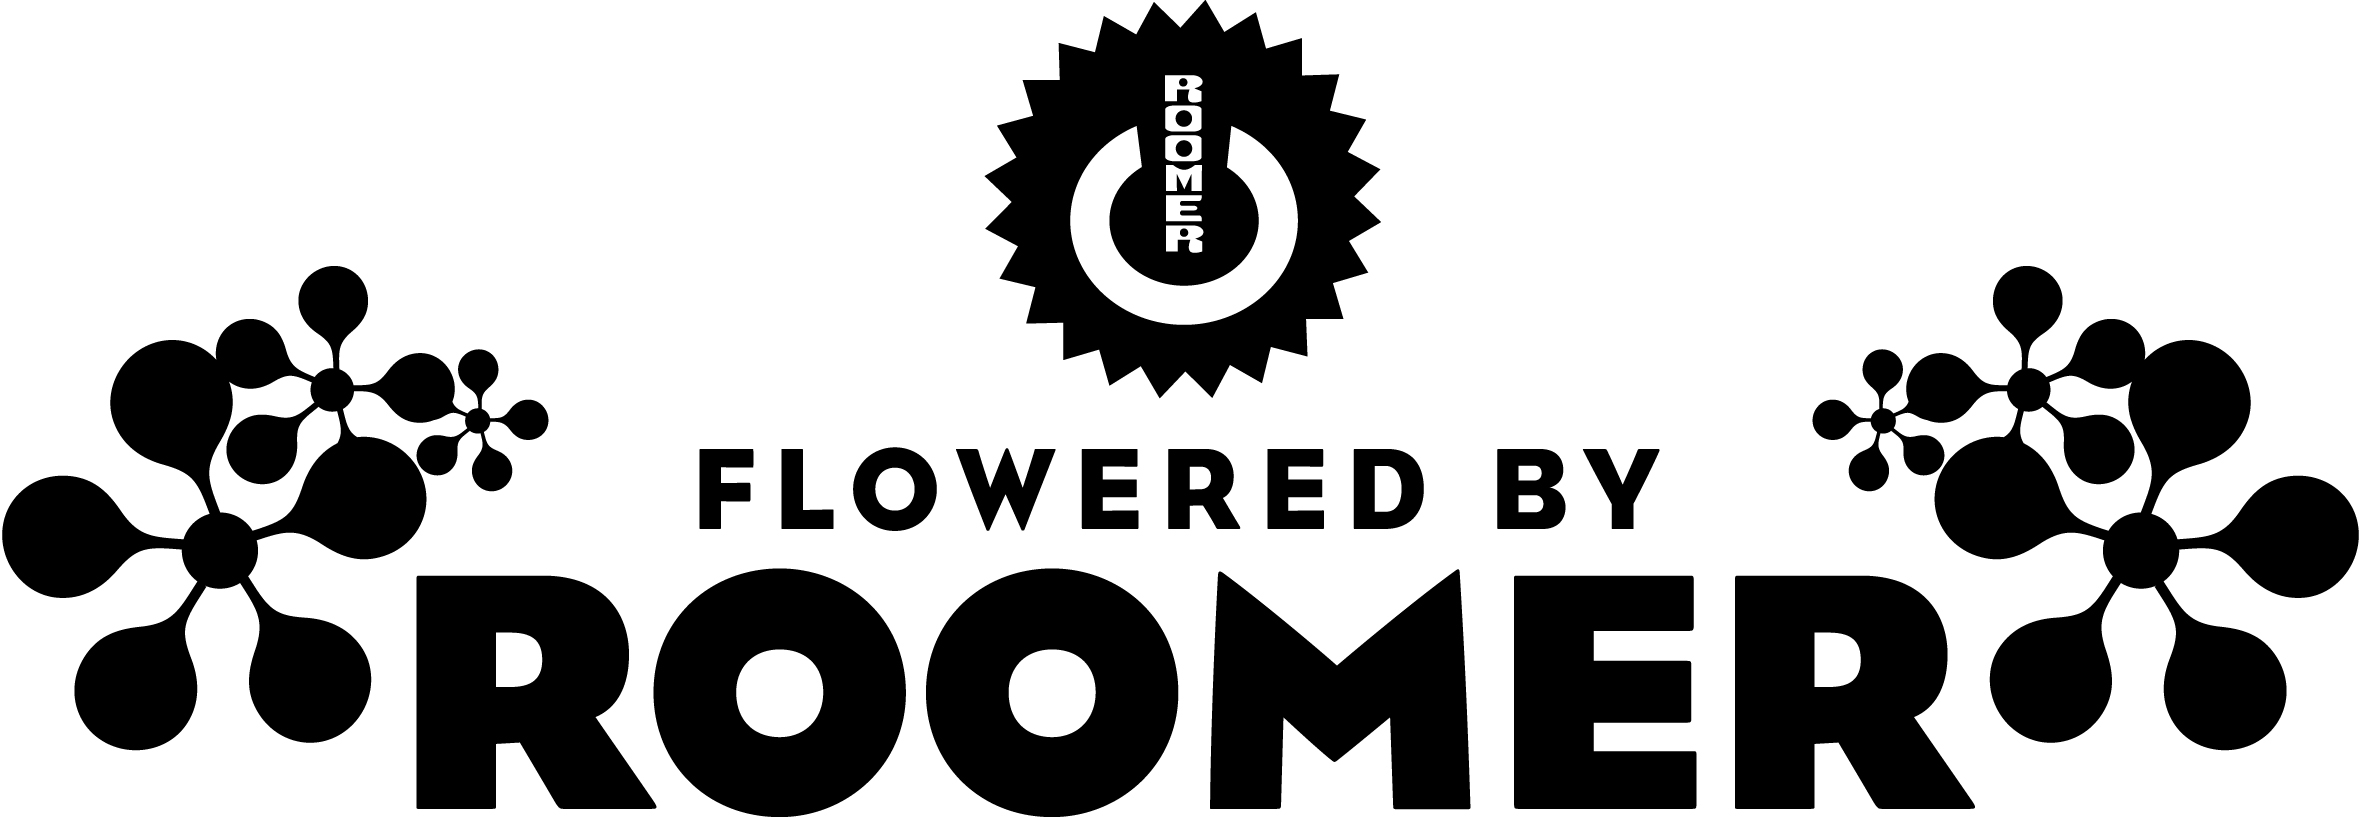 FLOWERED BY ROOMER-LOGO-DEF